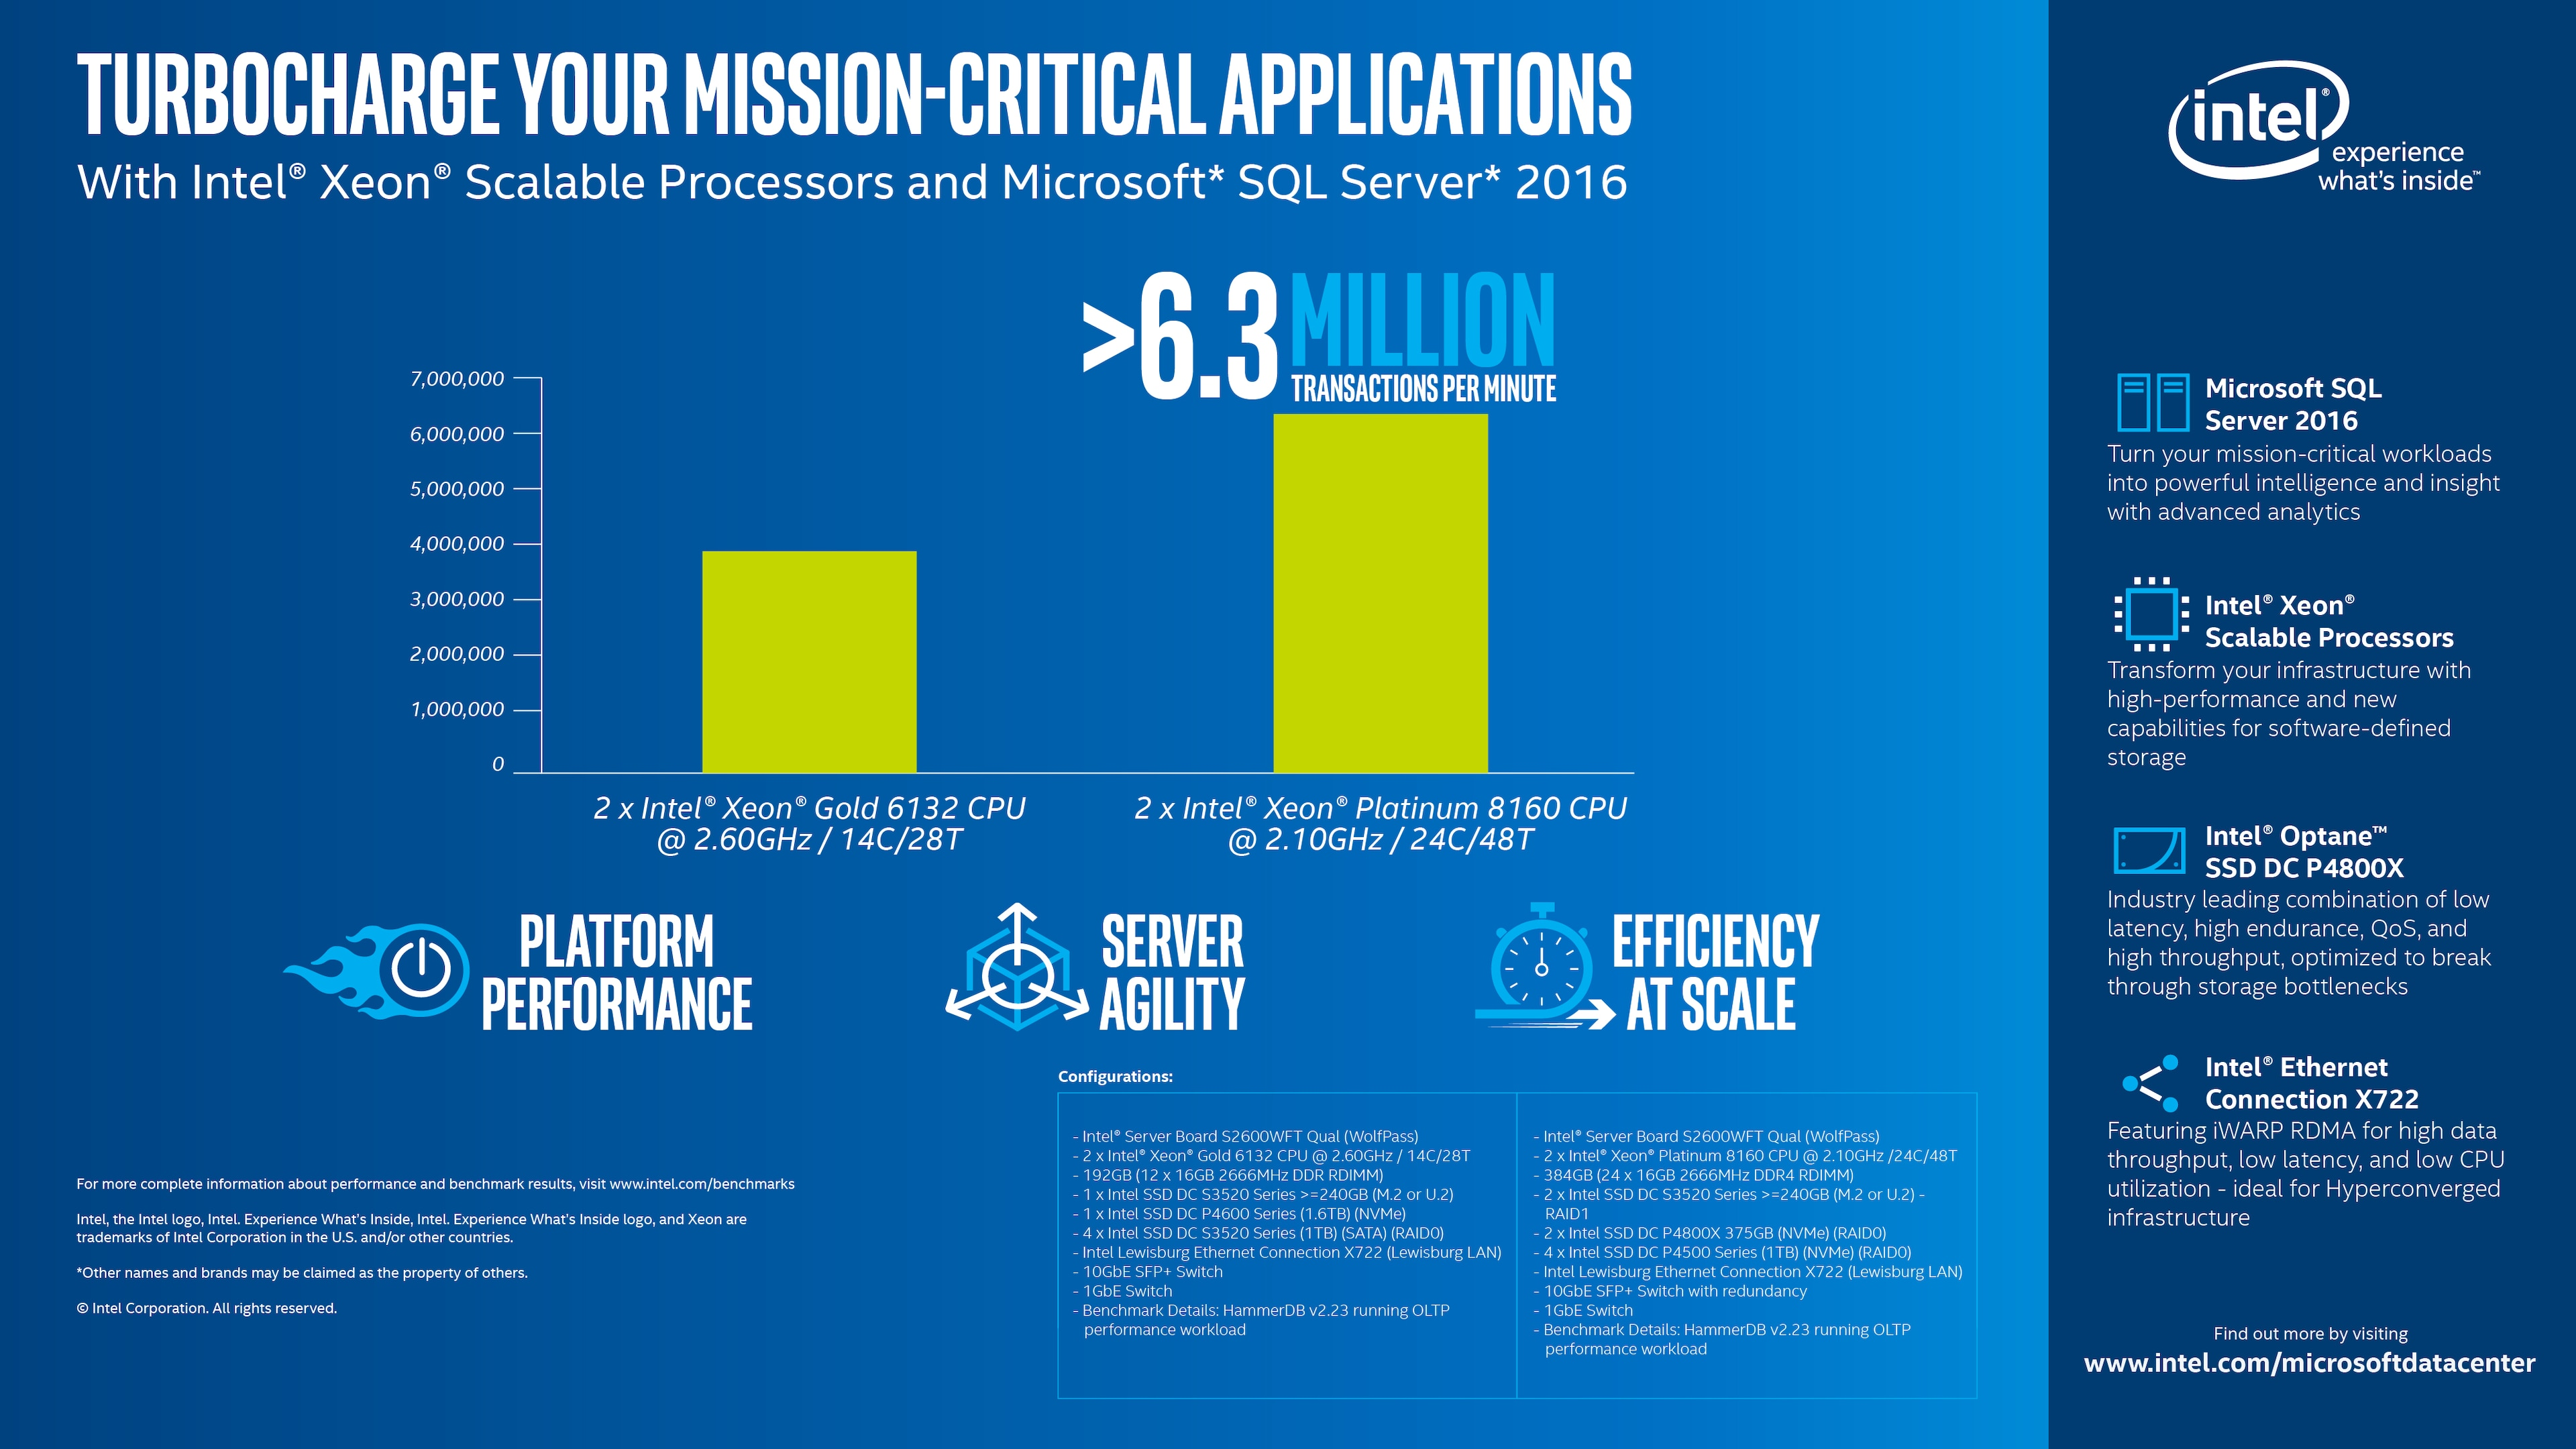 SQL Server 2016 and Intel® Xeon® Scalable Processor Benefits